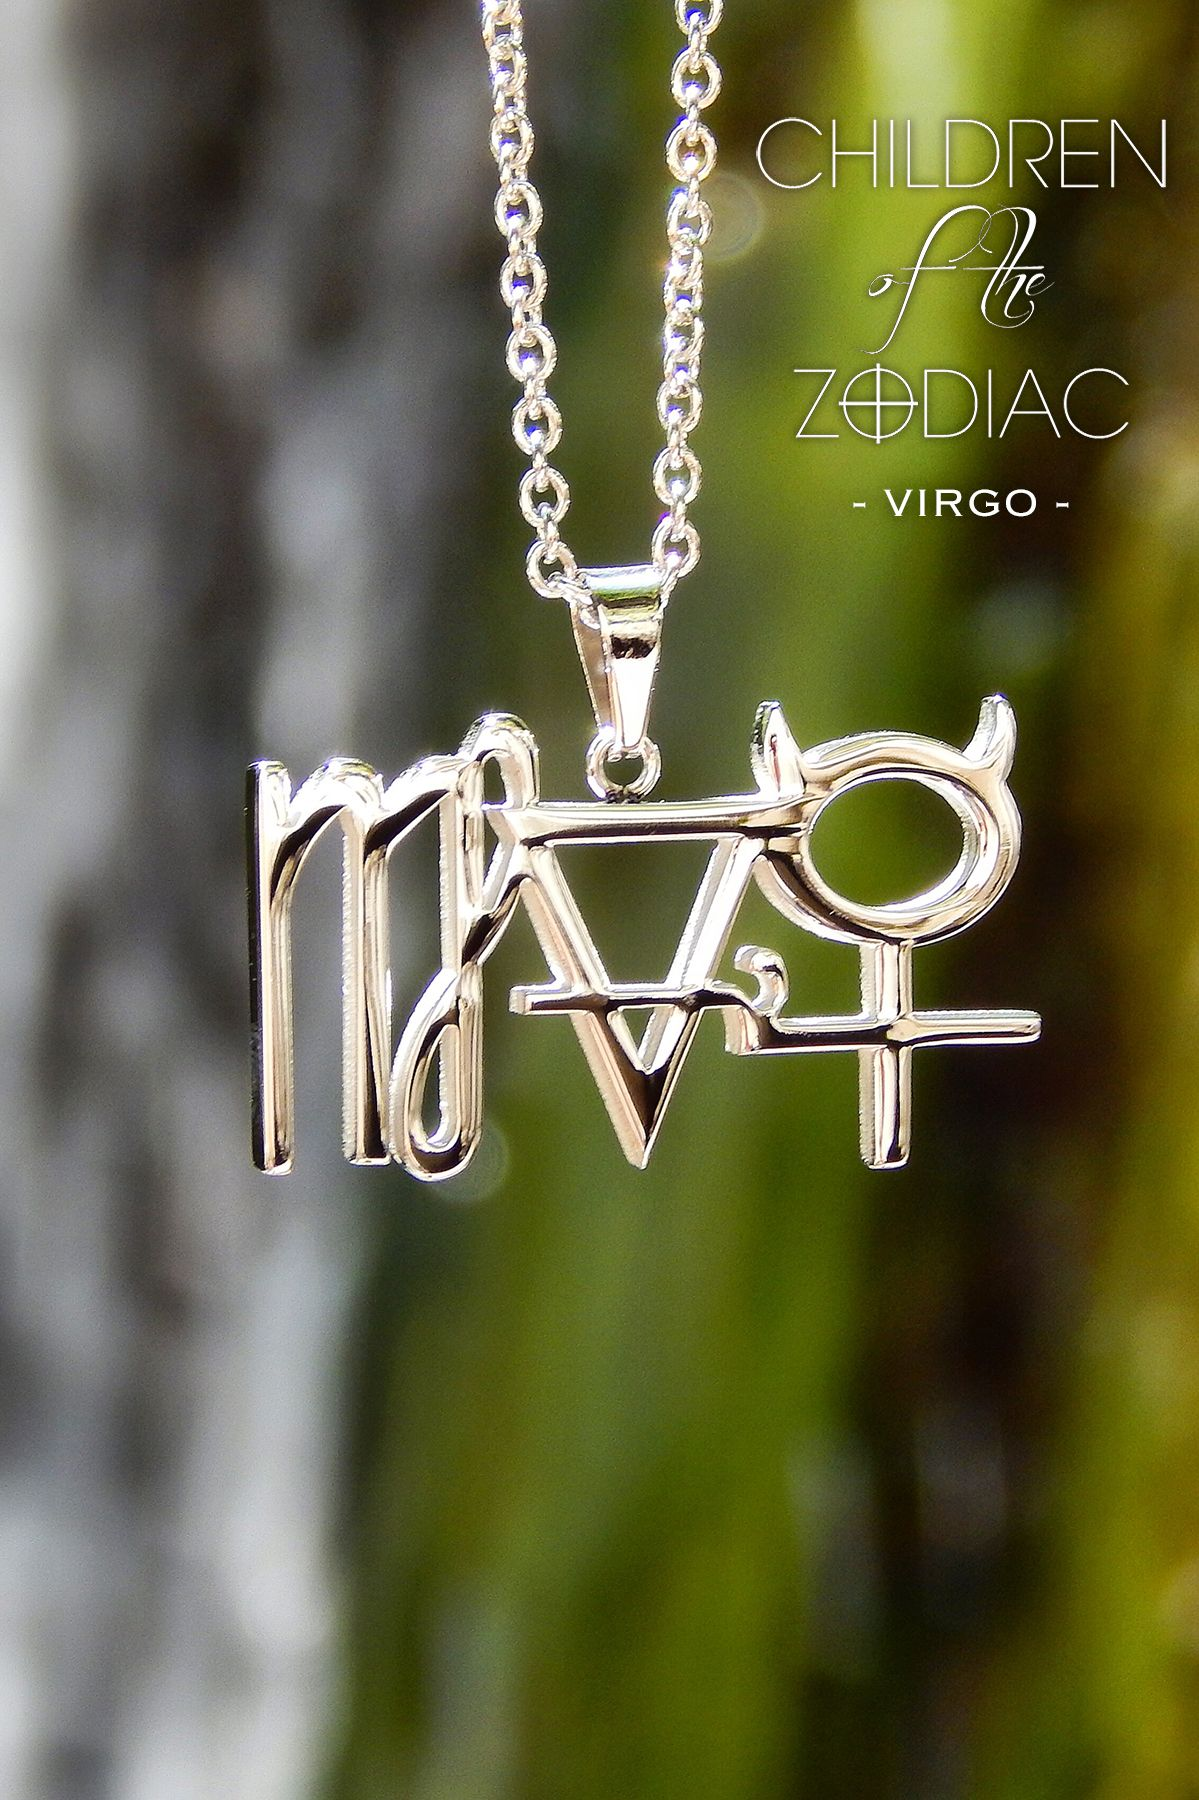 r zodiac charm products necklace g tn virgo